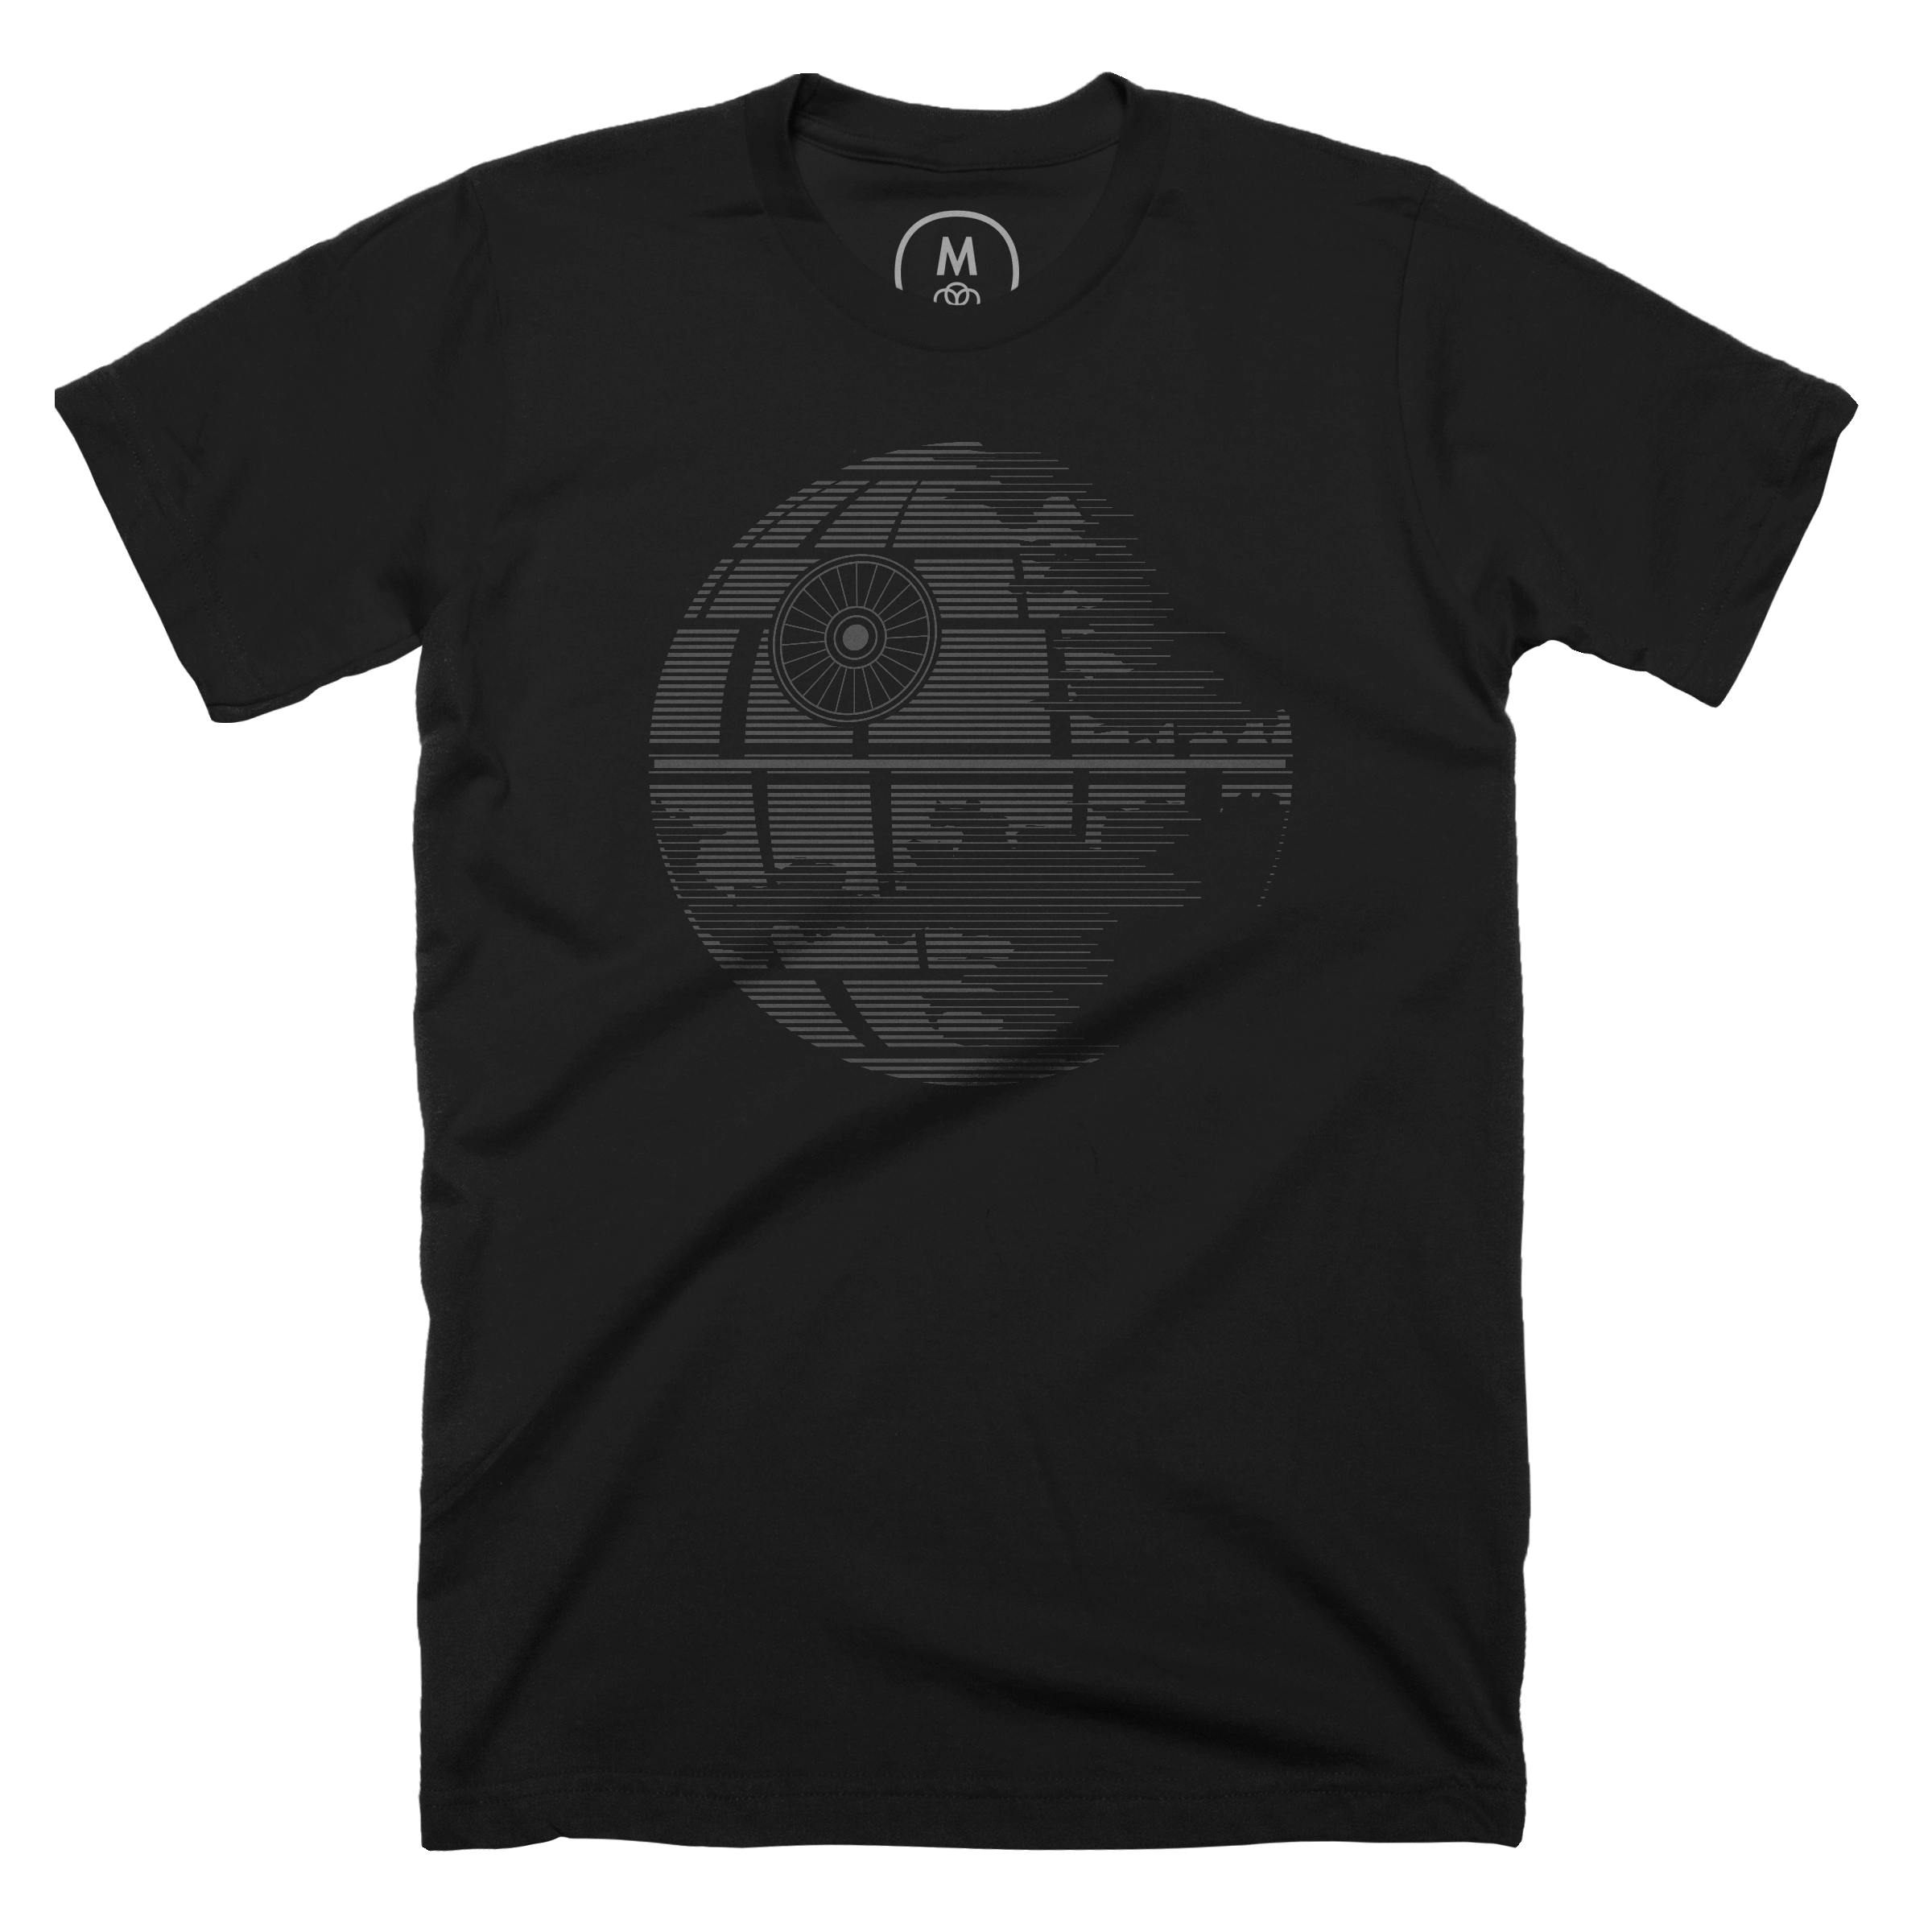 That's No Moon Black (Men's)